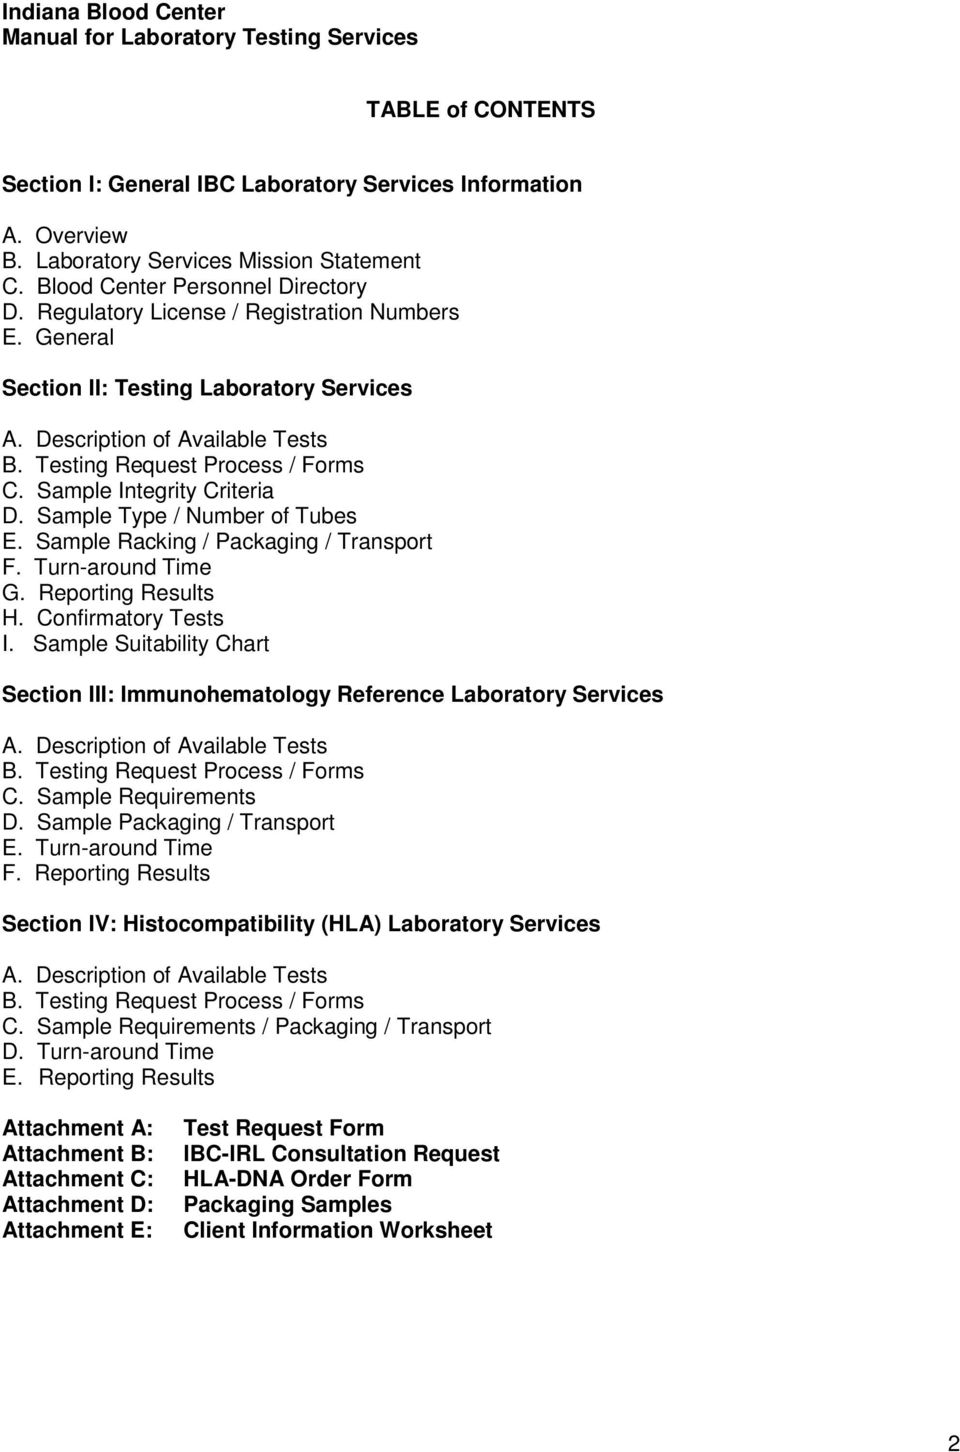 Customer Resource Manual For Laboratory Testing Services - PDF